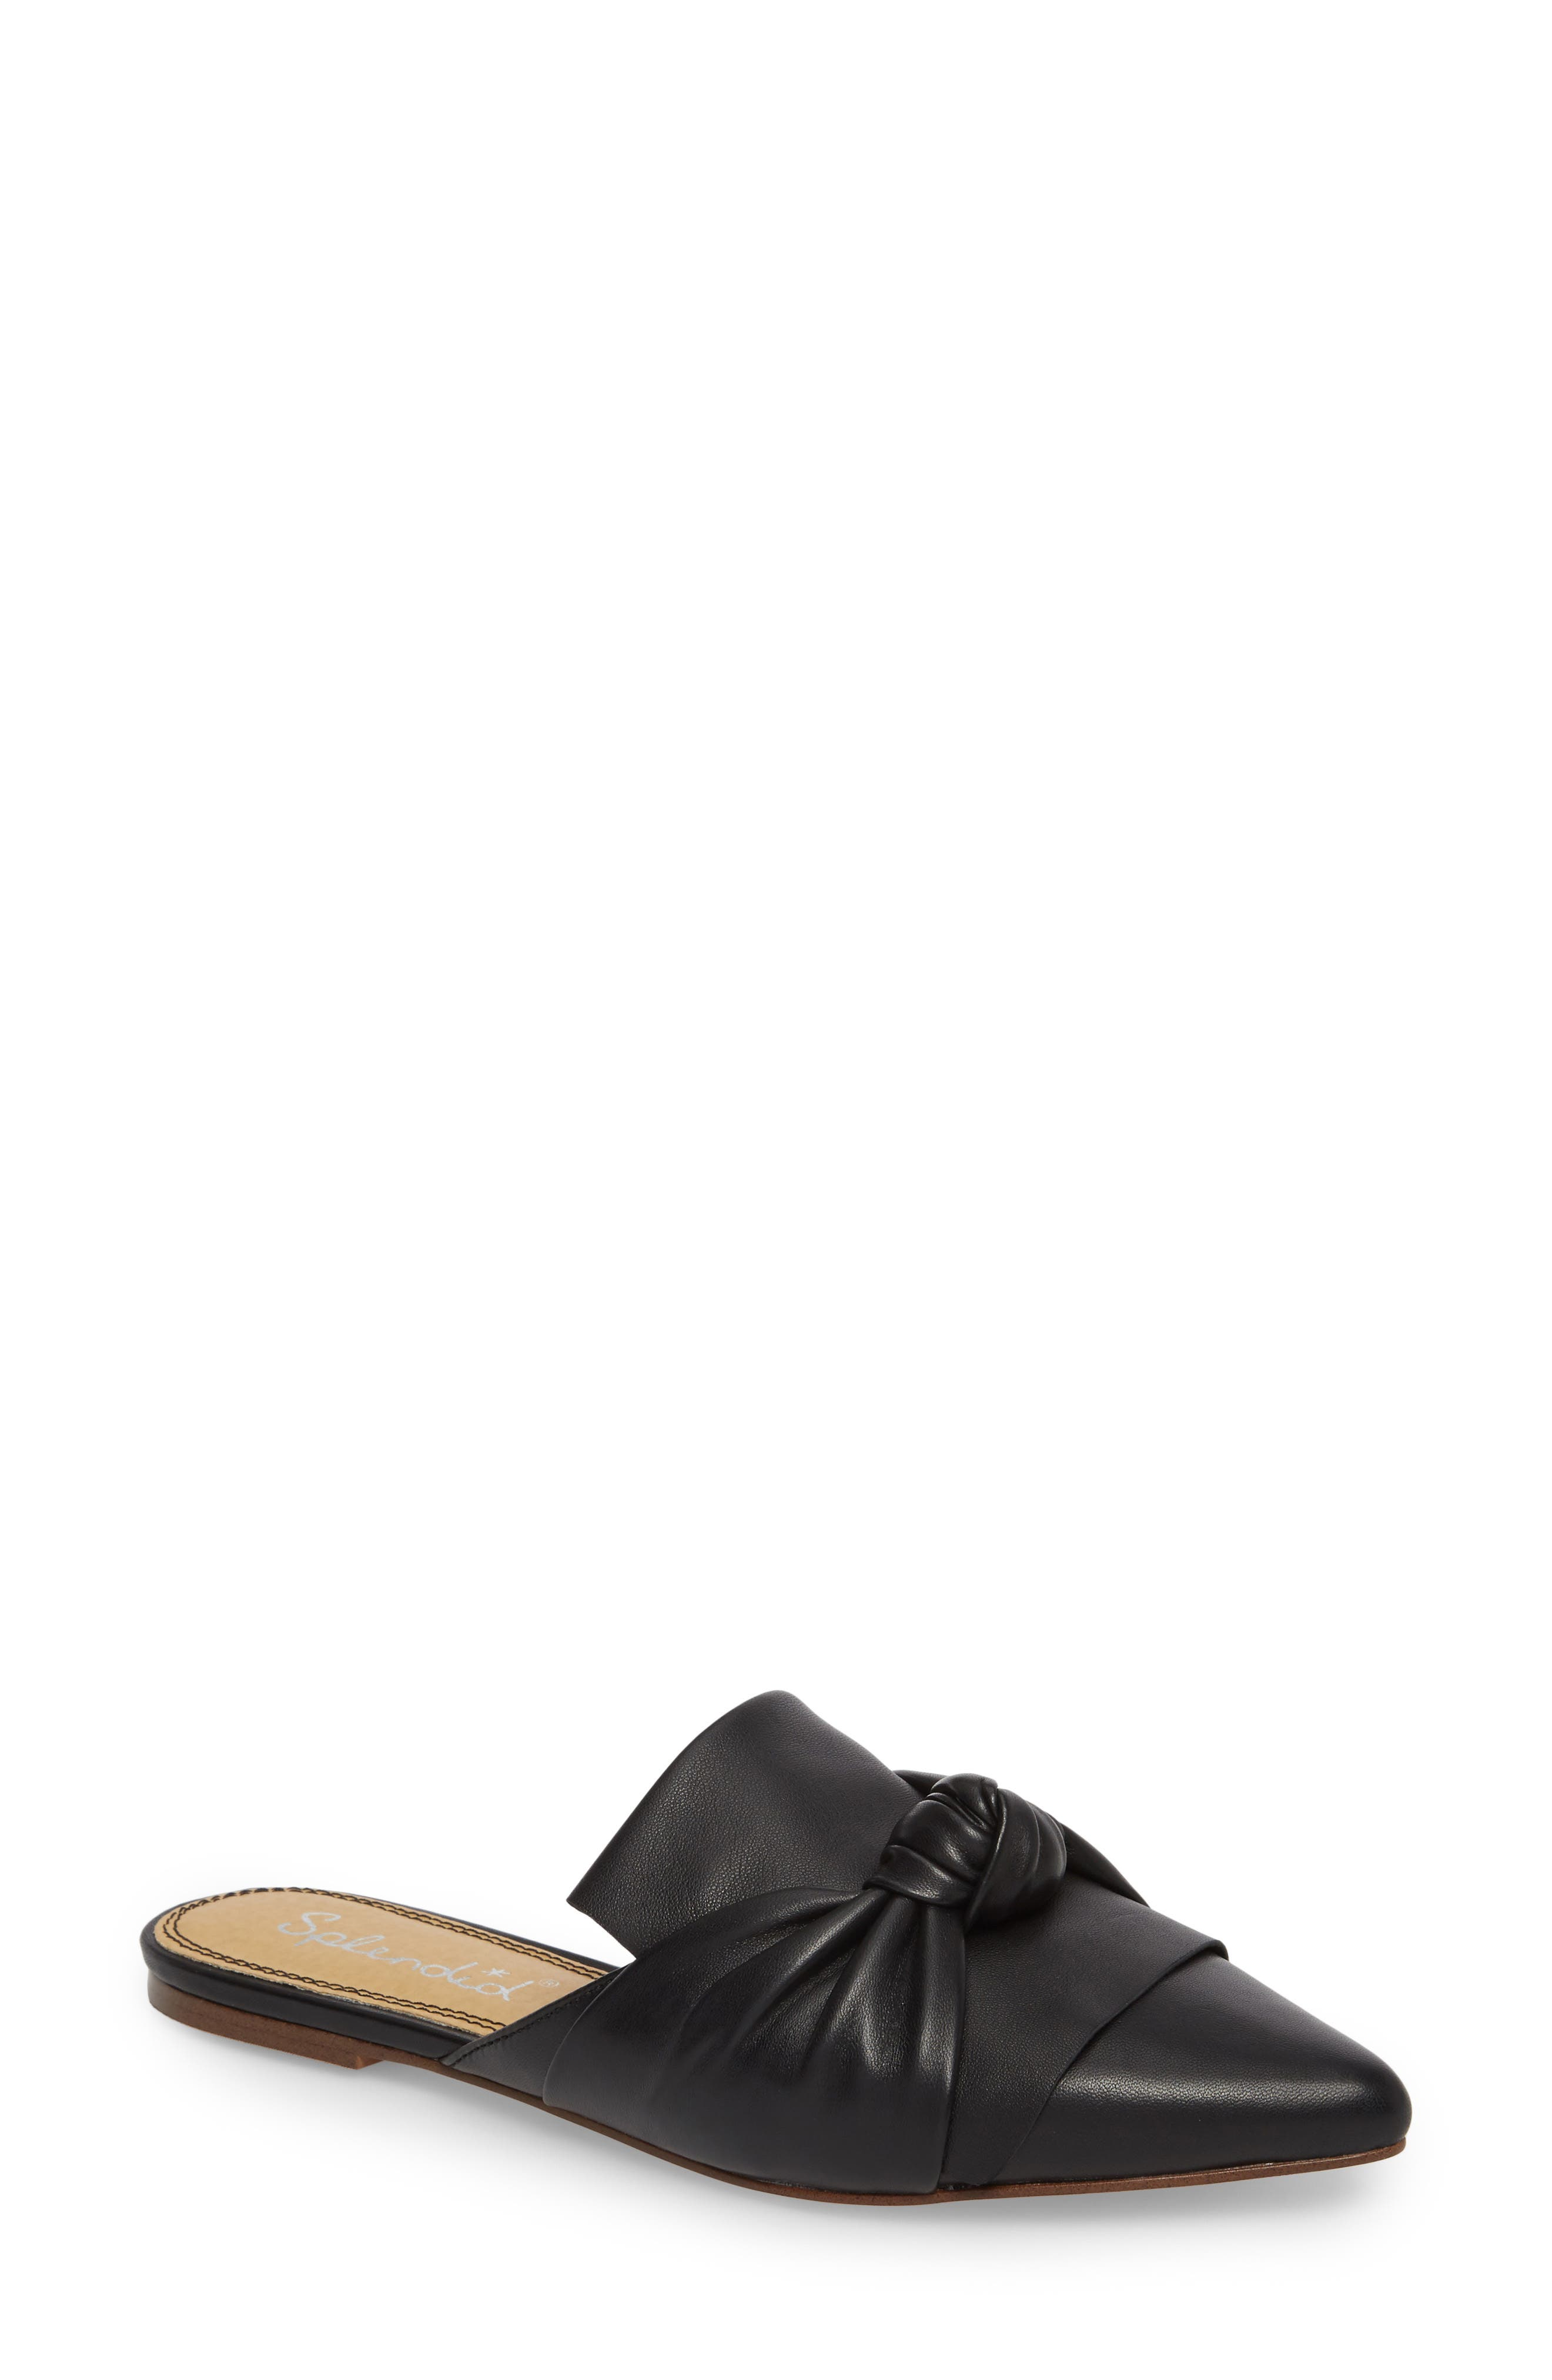 Bassett Knotted Pointy Toe Mule,                             Main thumbnail 1, color,                             Black Leather